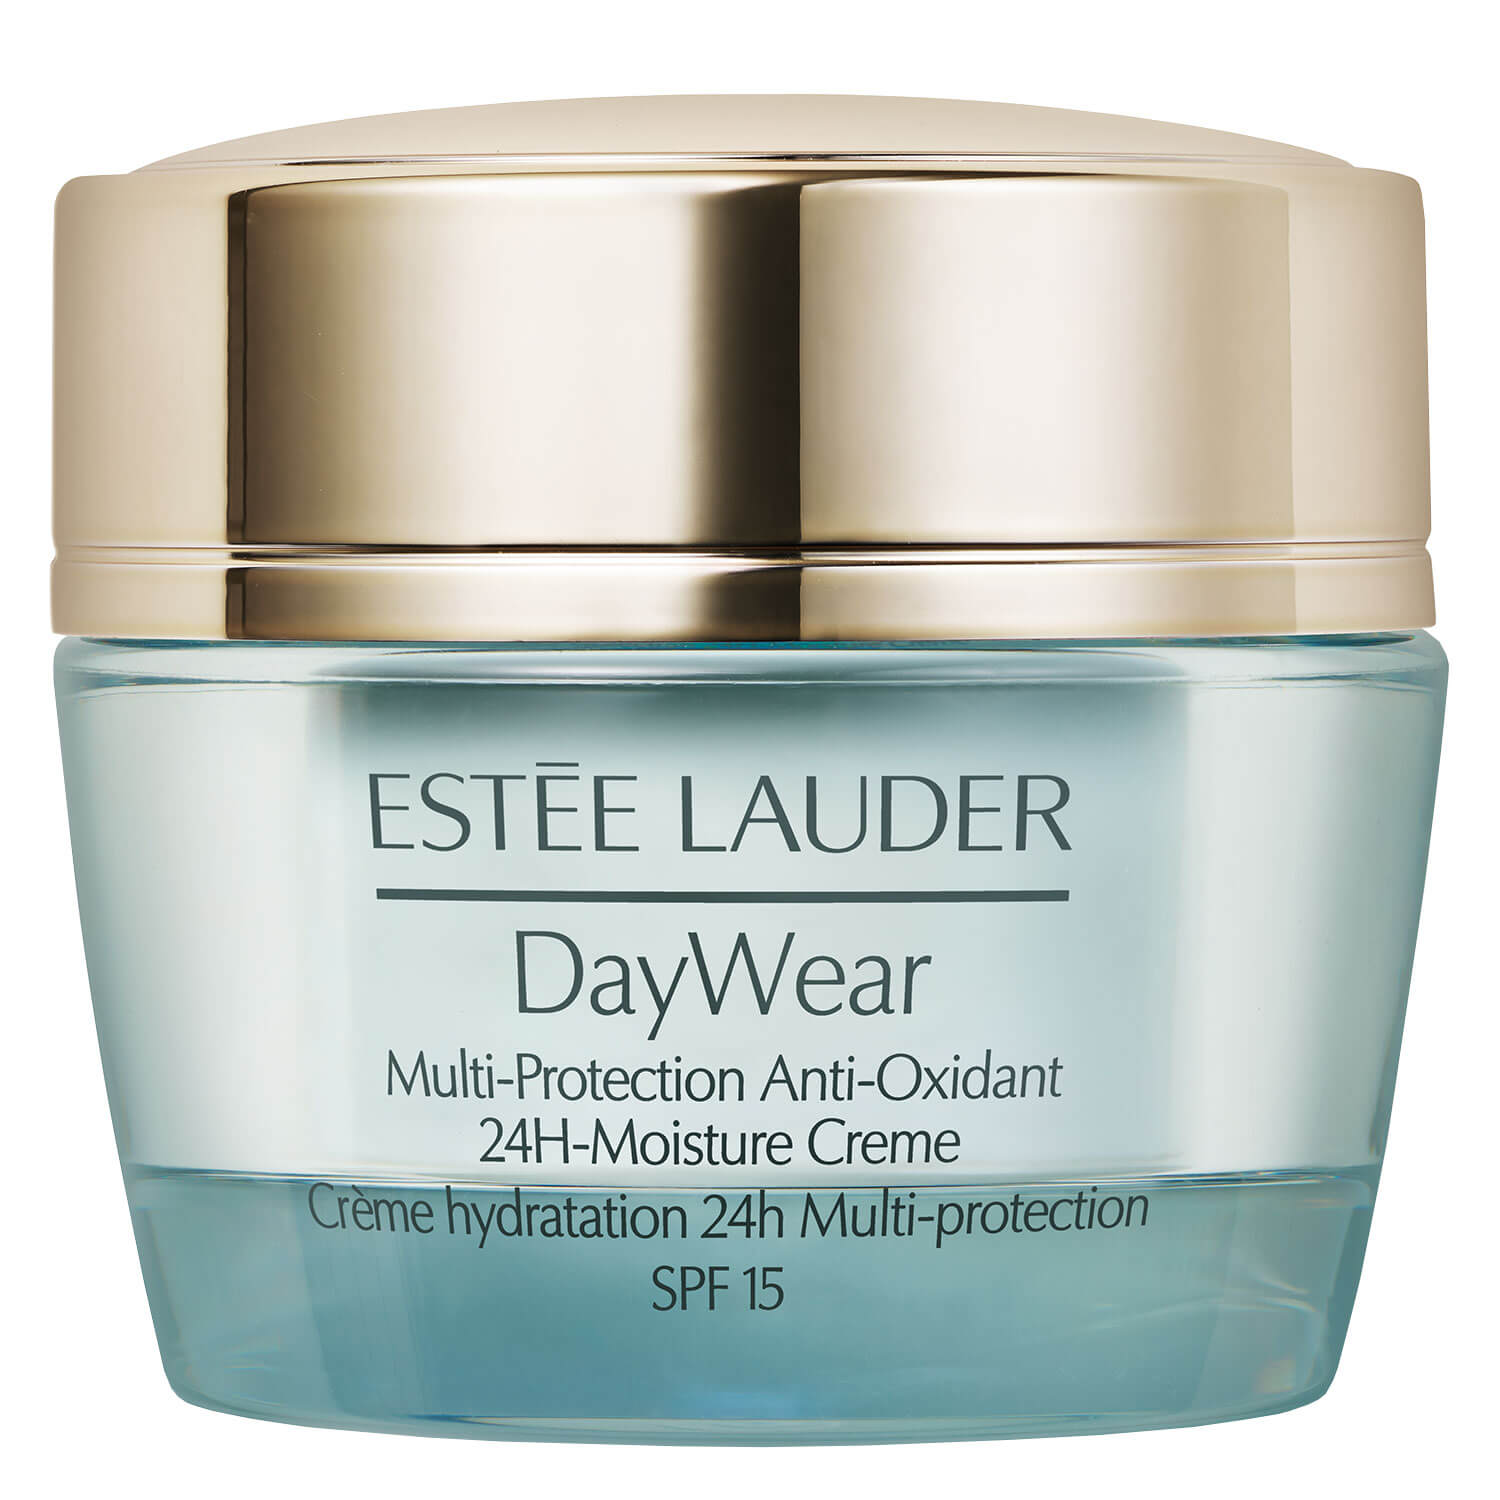 DayWear Advanced Multi-Protection Anti-Oxidant Creme SPF15 Normal/Combination Skin (15ml) Geschenk